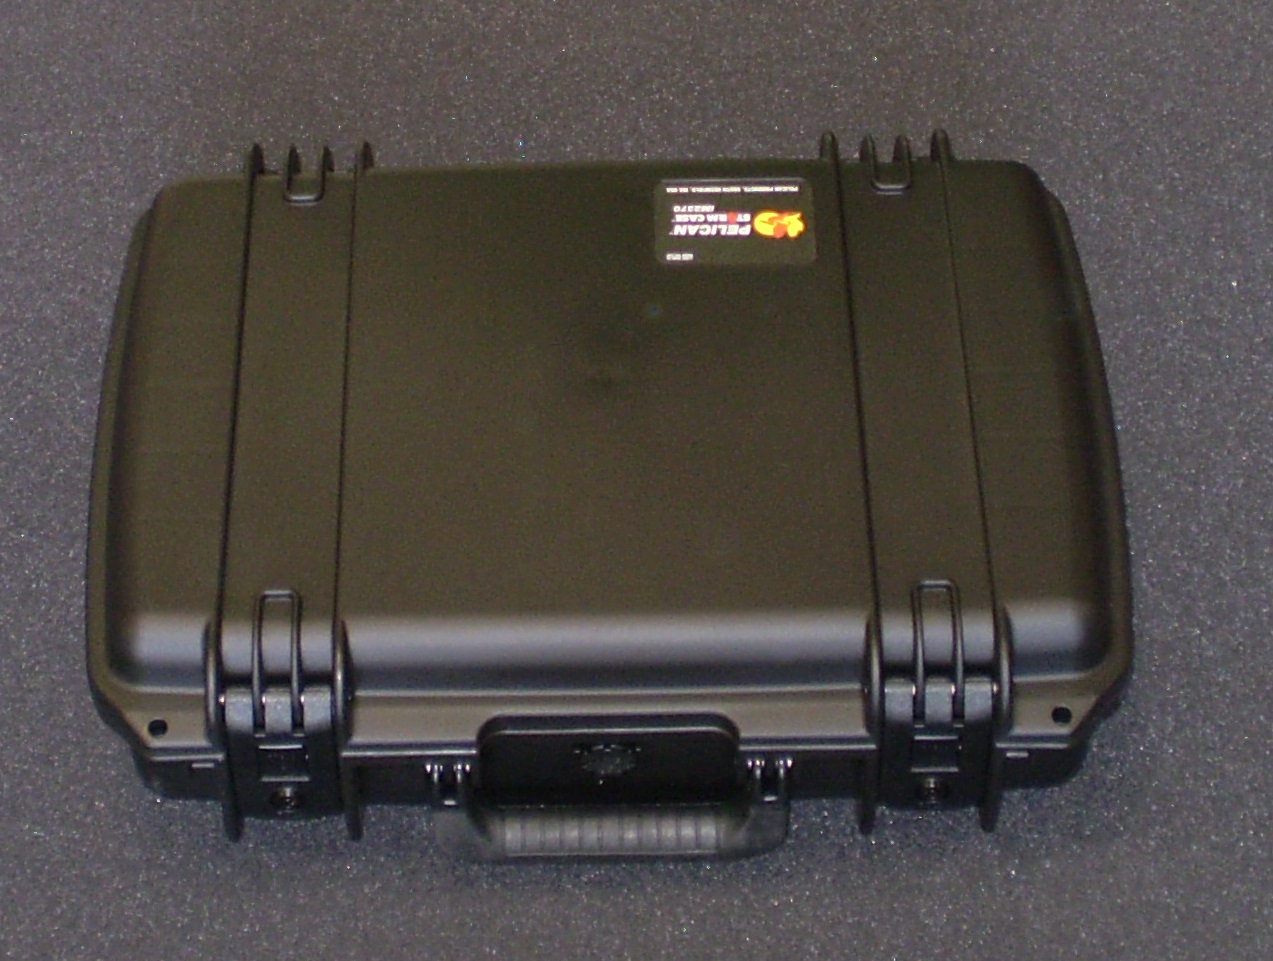 Print # 6074 - iM2370 Pelican Storm Case with Custom Foam Insert for (3) Tascam Battery Packs and (1) Tascam Chargers By Nelson Case Corp